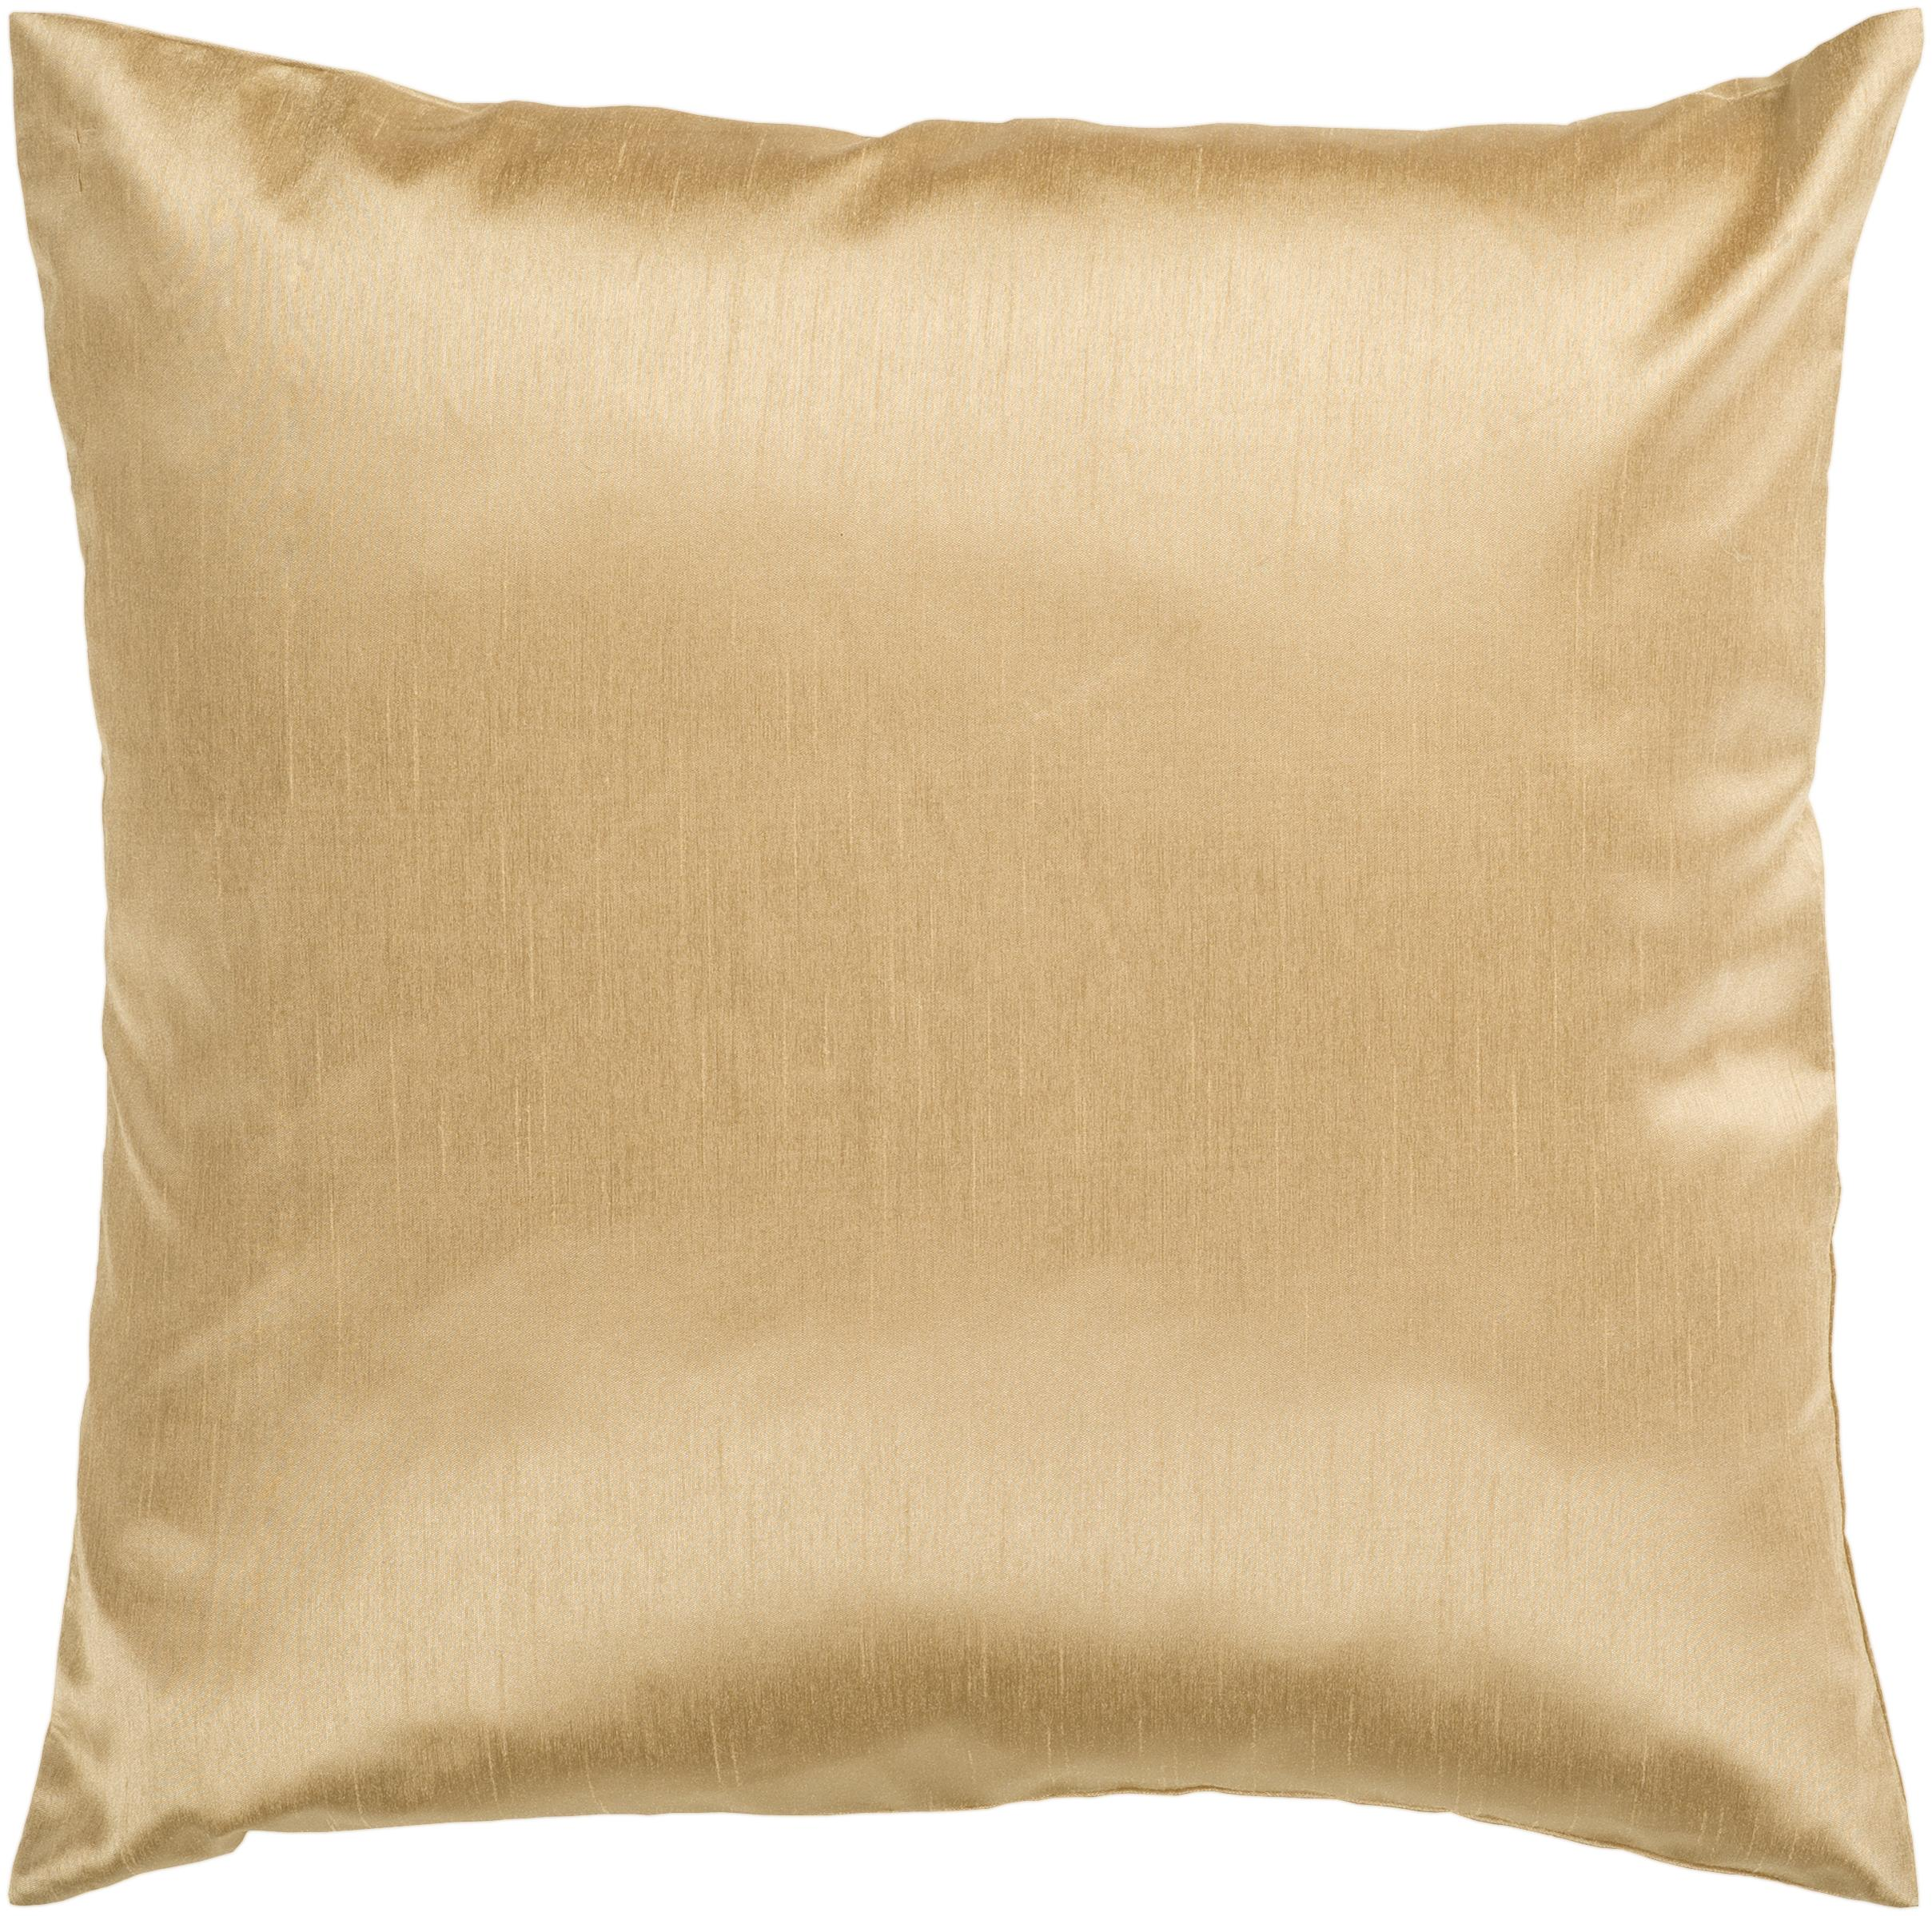 "Surya Rugs Pillows 22"" x 22"" Pillow - Item Number: HH038-2222P"